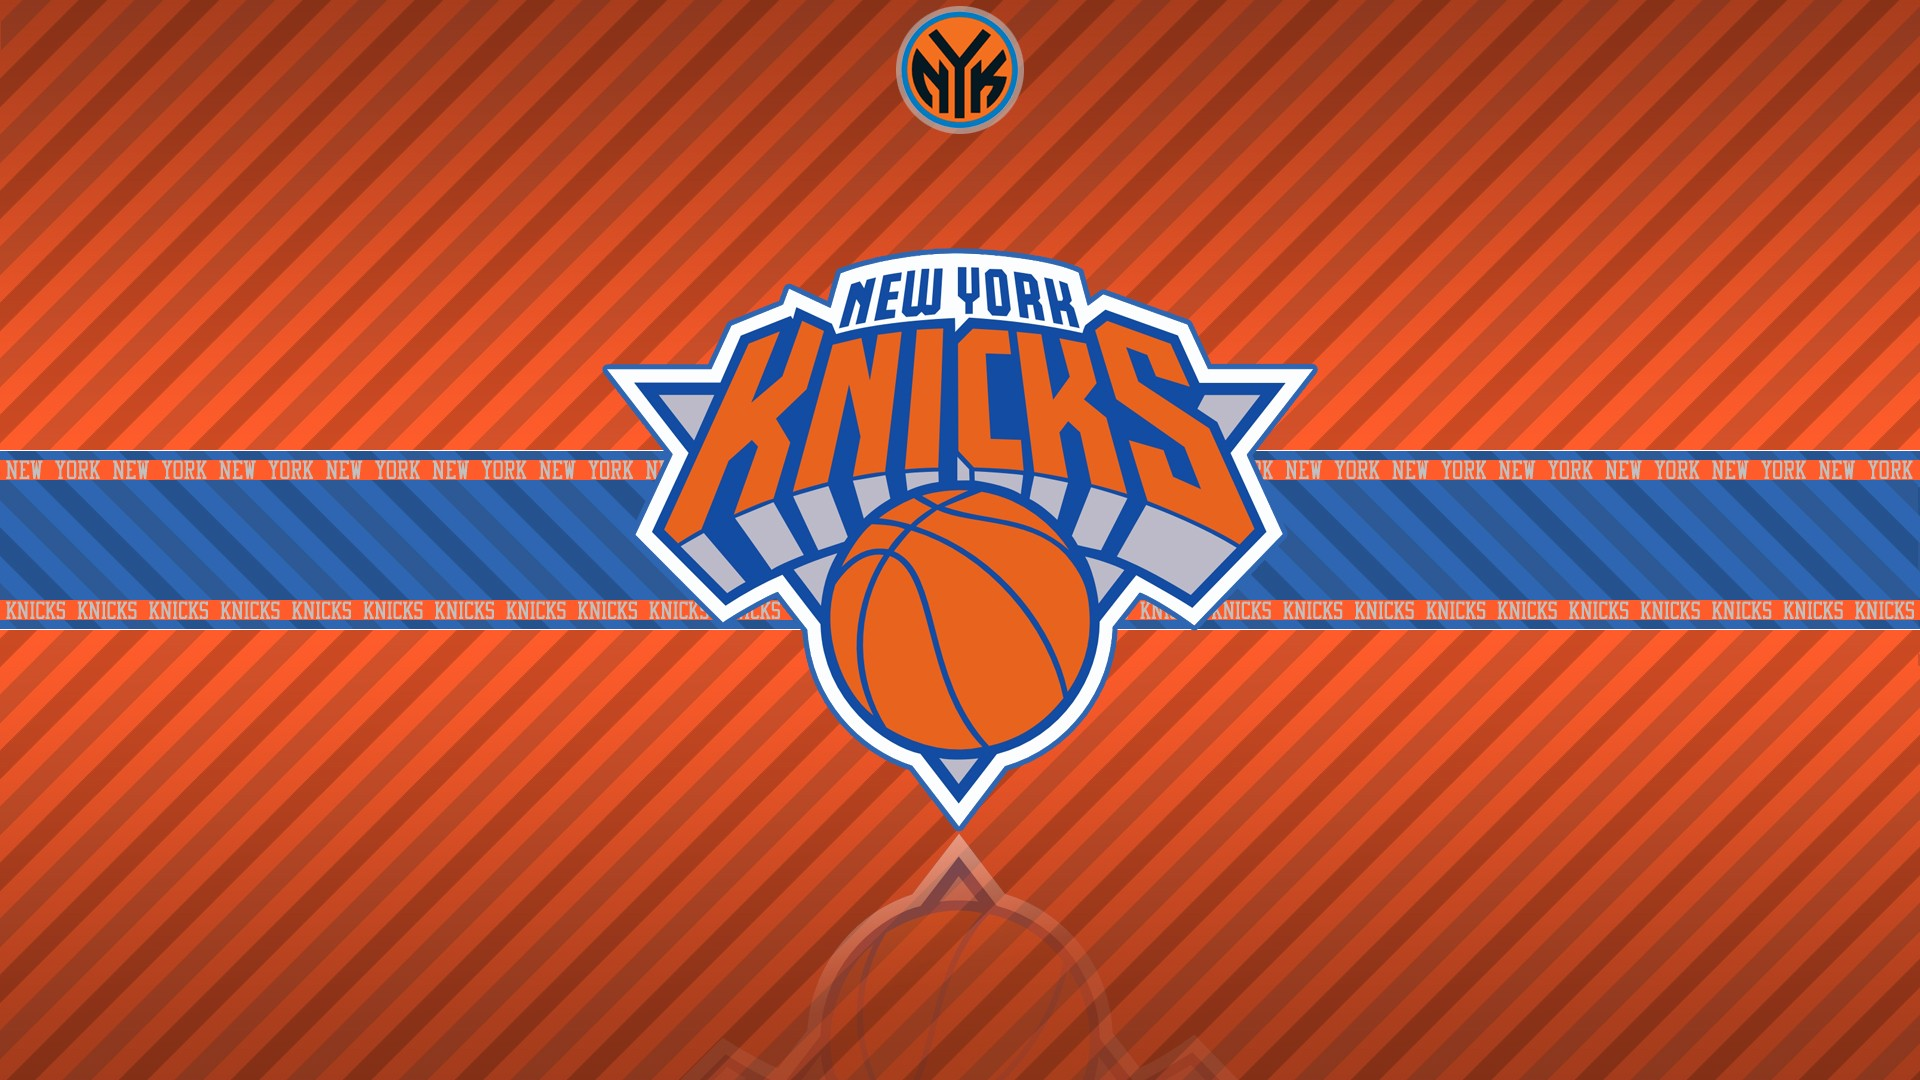 New York Knicks HD Wallpapers Backgrounds 1920x1080